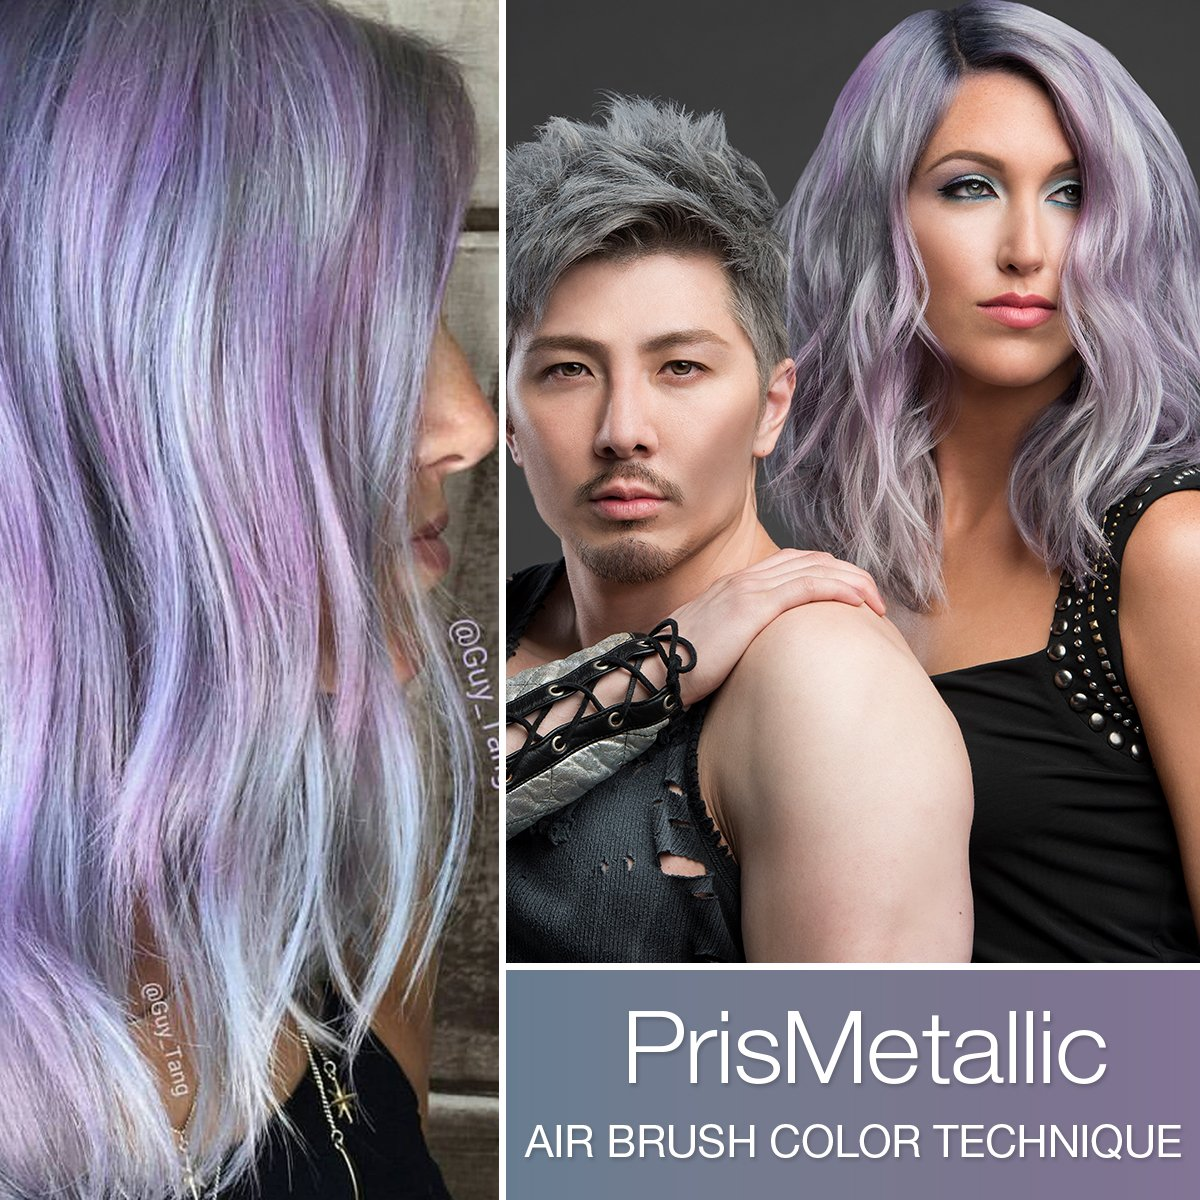 PrisMetallic Airbrushing Haircolor Technique by Guy Tang